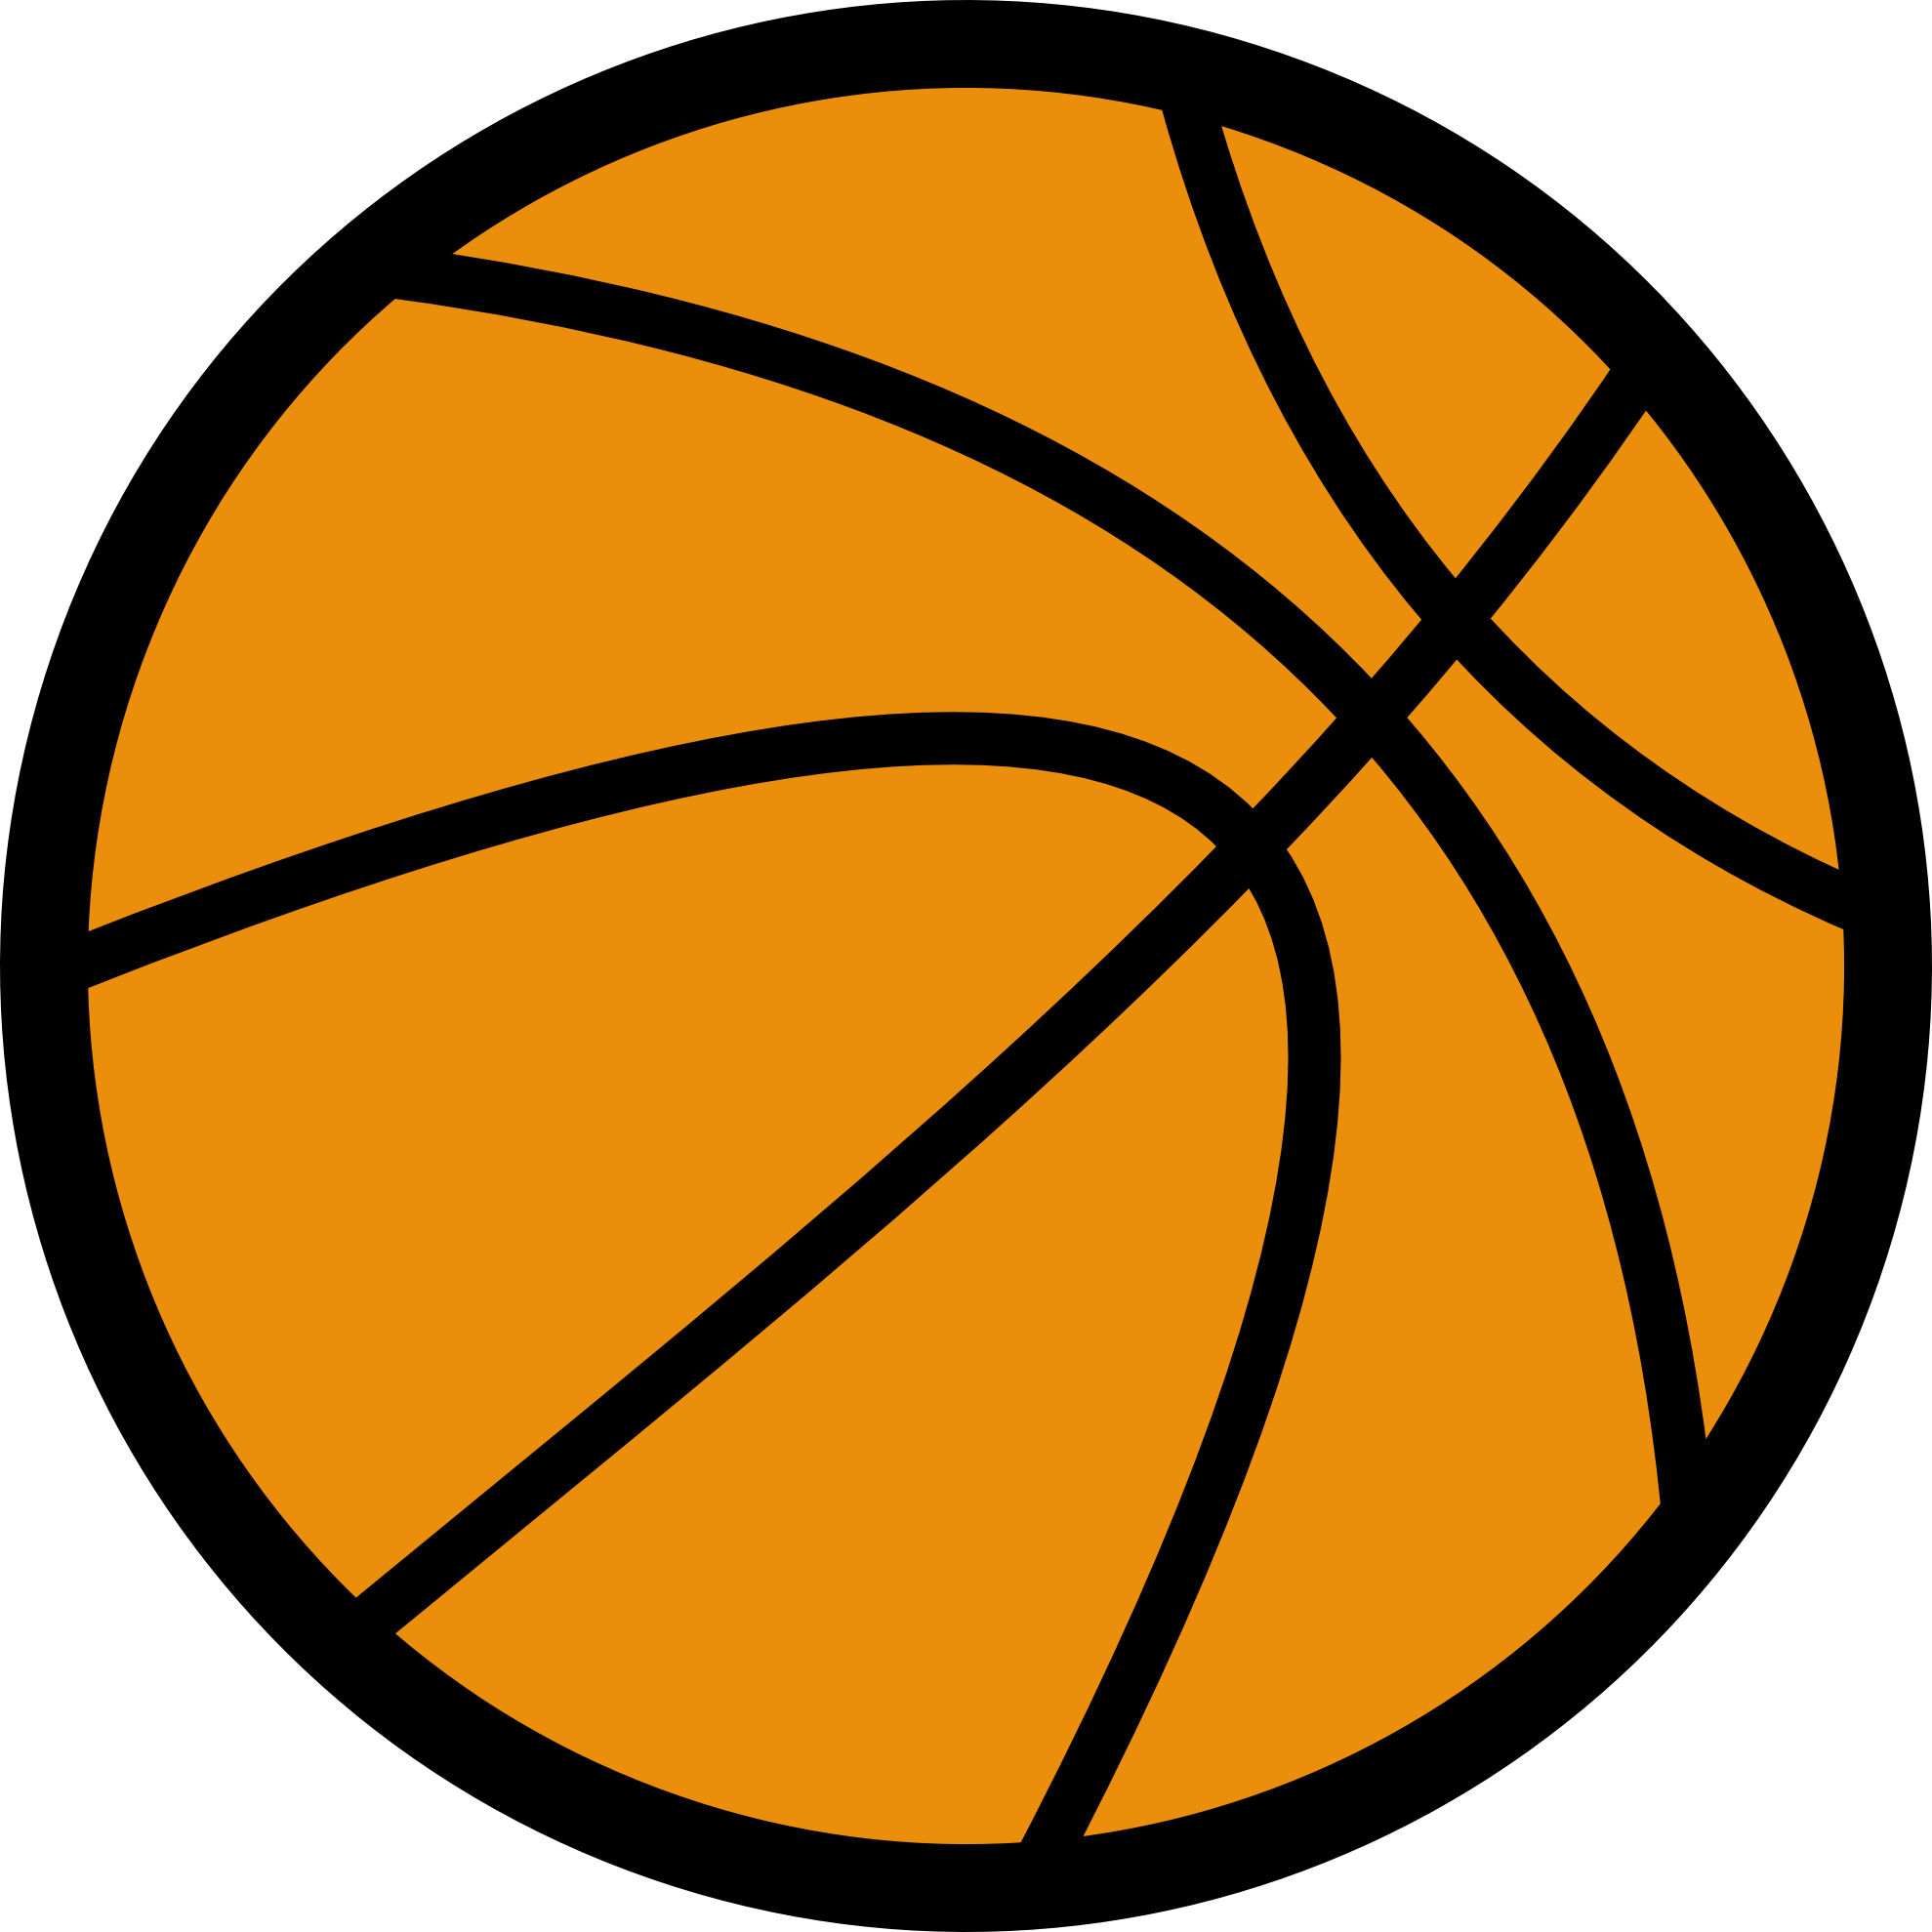 Basketball clipart transparent 3 » Clipart Portal.